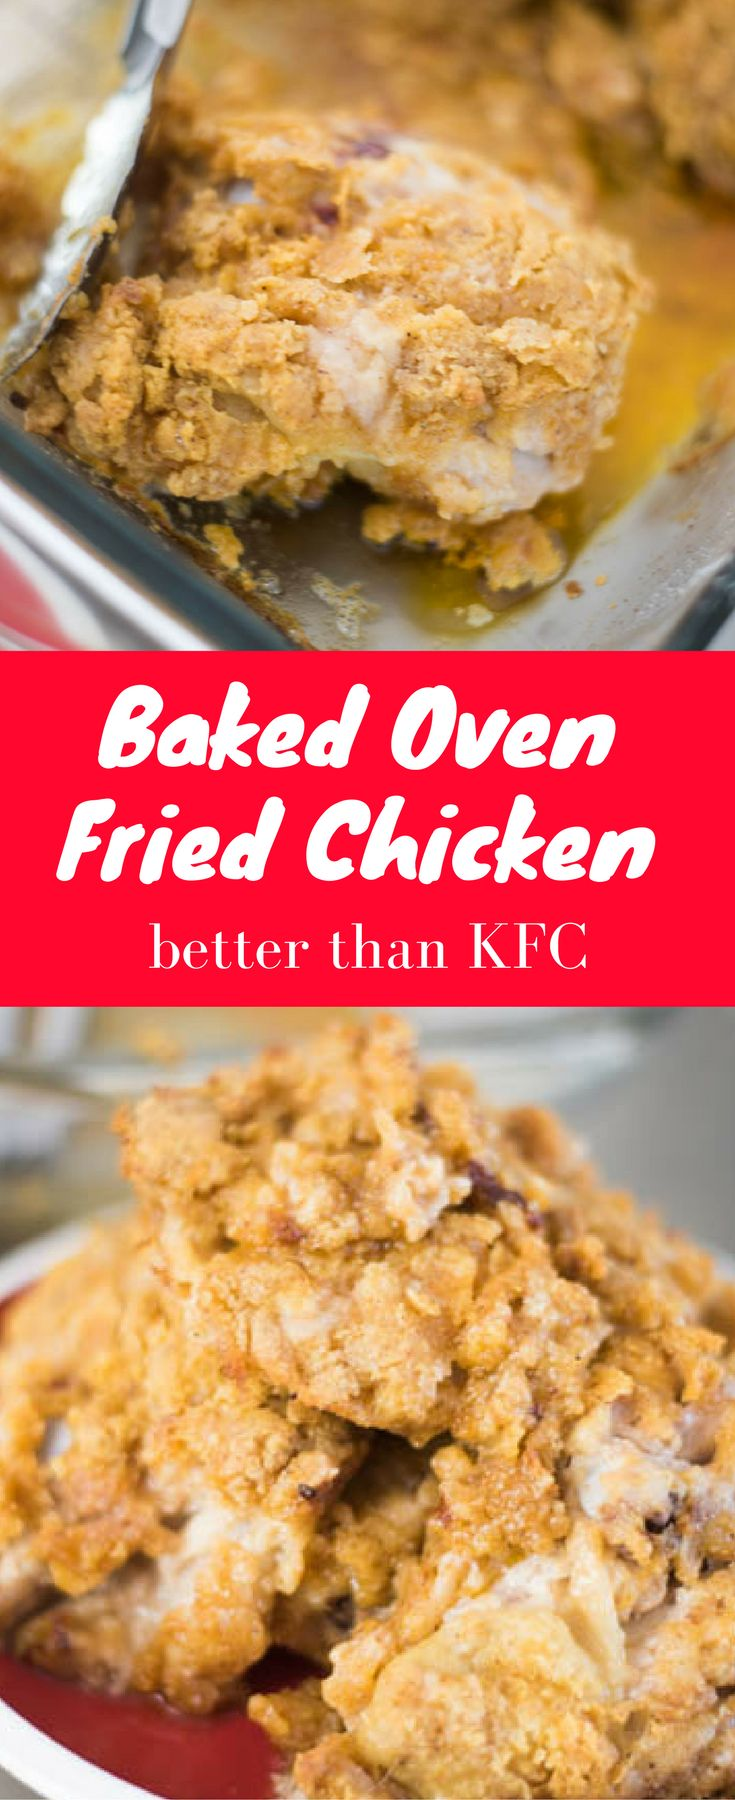 This crispy baked oven fried chicken is the best you'll ever have. It's better than KFC chicken, and you'll want to make it over and over again.